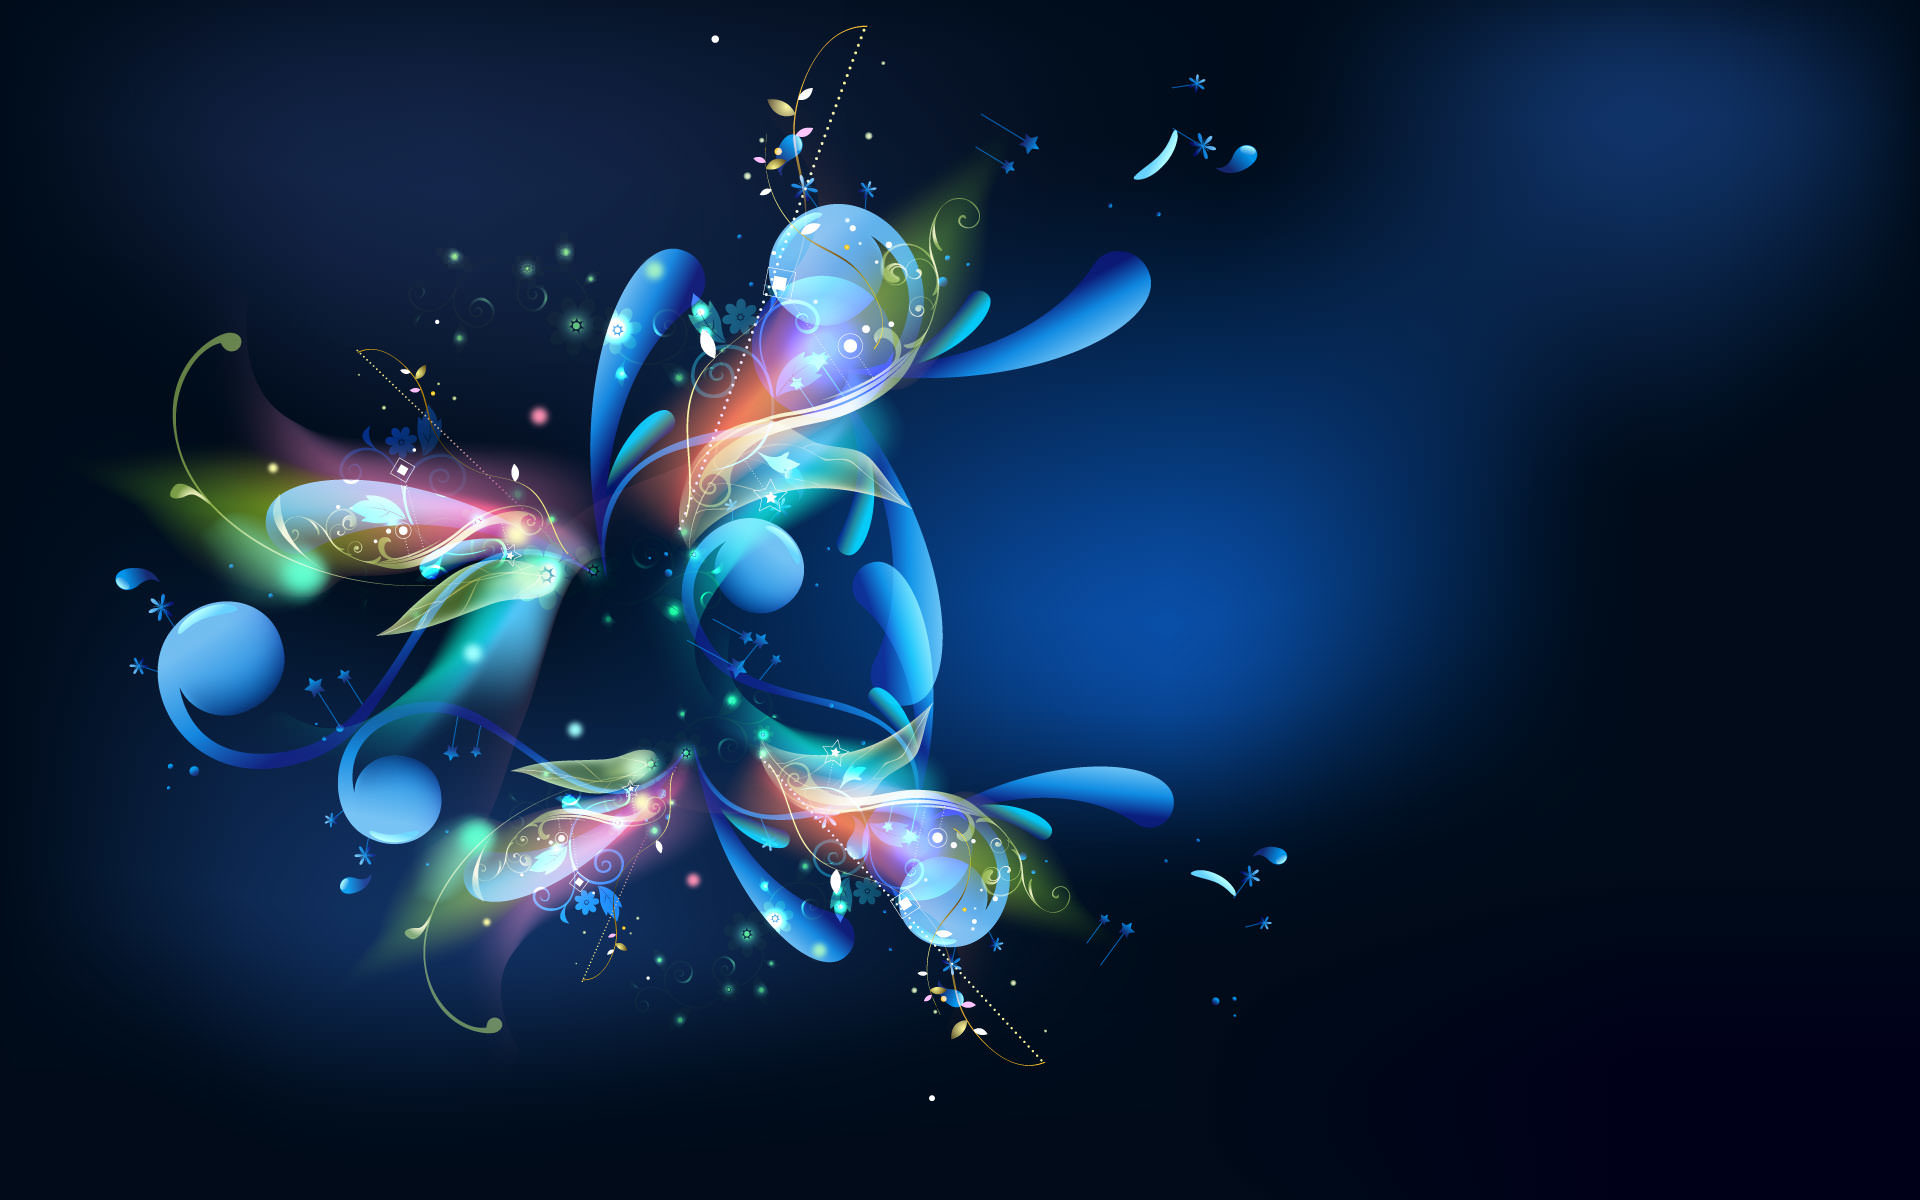 wallpapers pretty wallpaper abstract 1920x1200